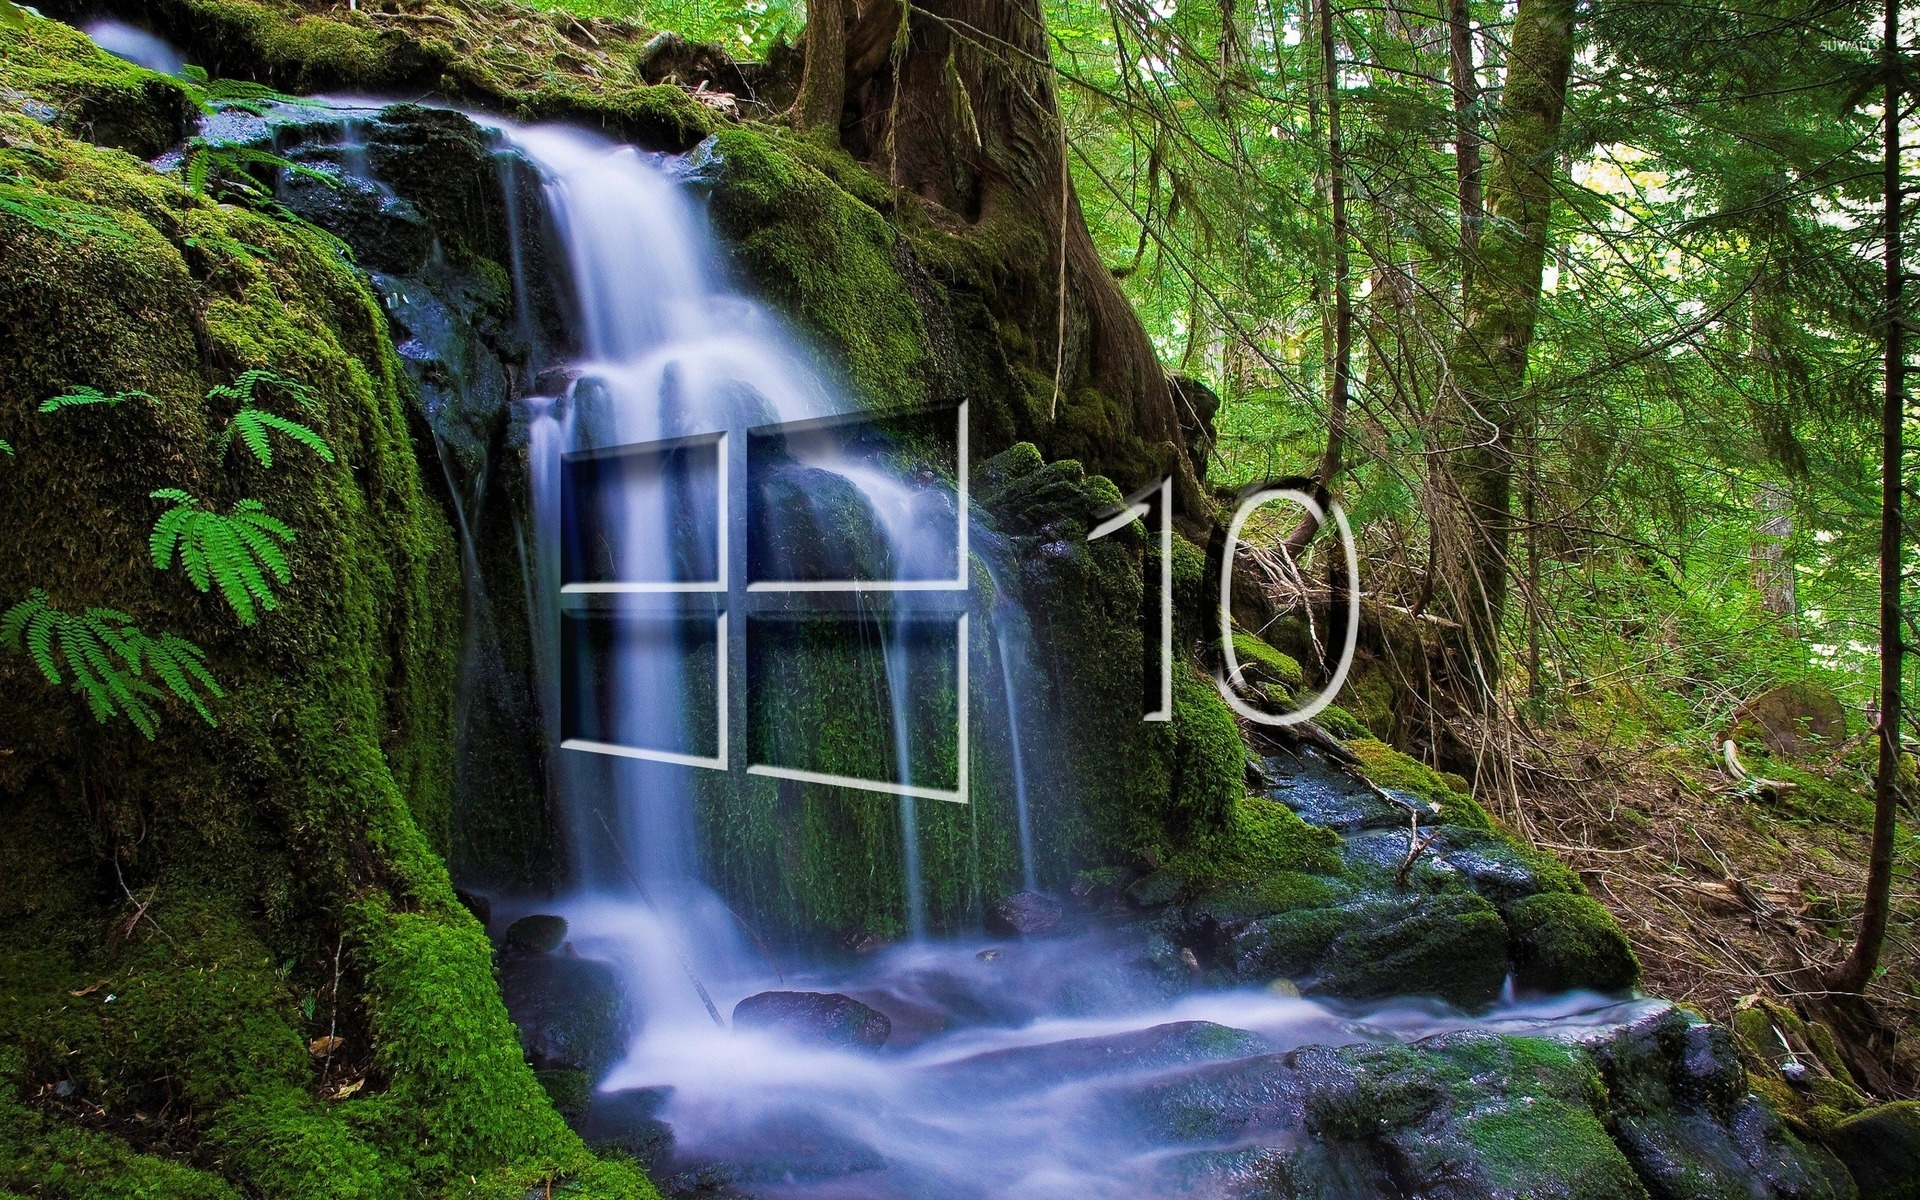 Natural Falls Wallpaper Free Download Windows 10 Over The Waterfall Glass Logo Wallpaper